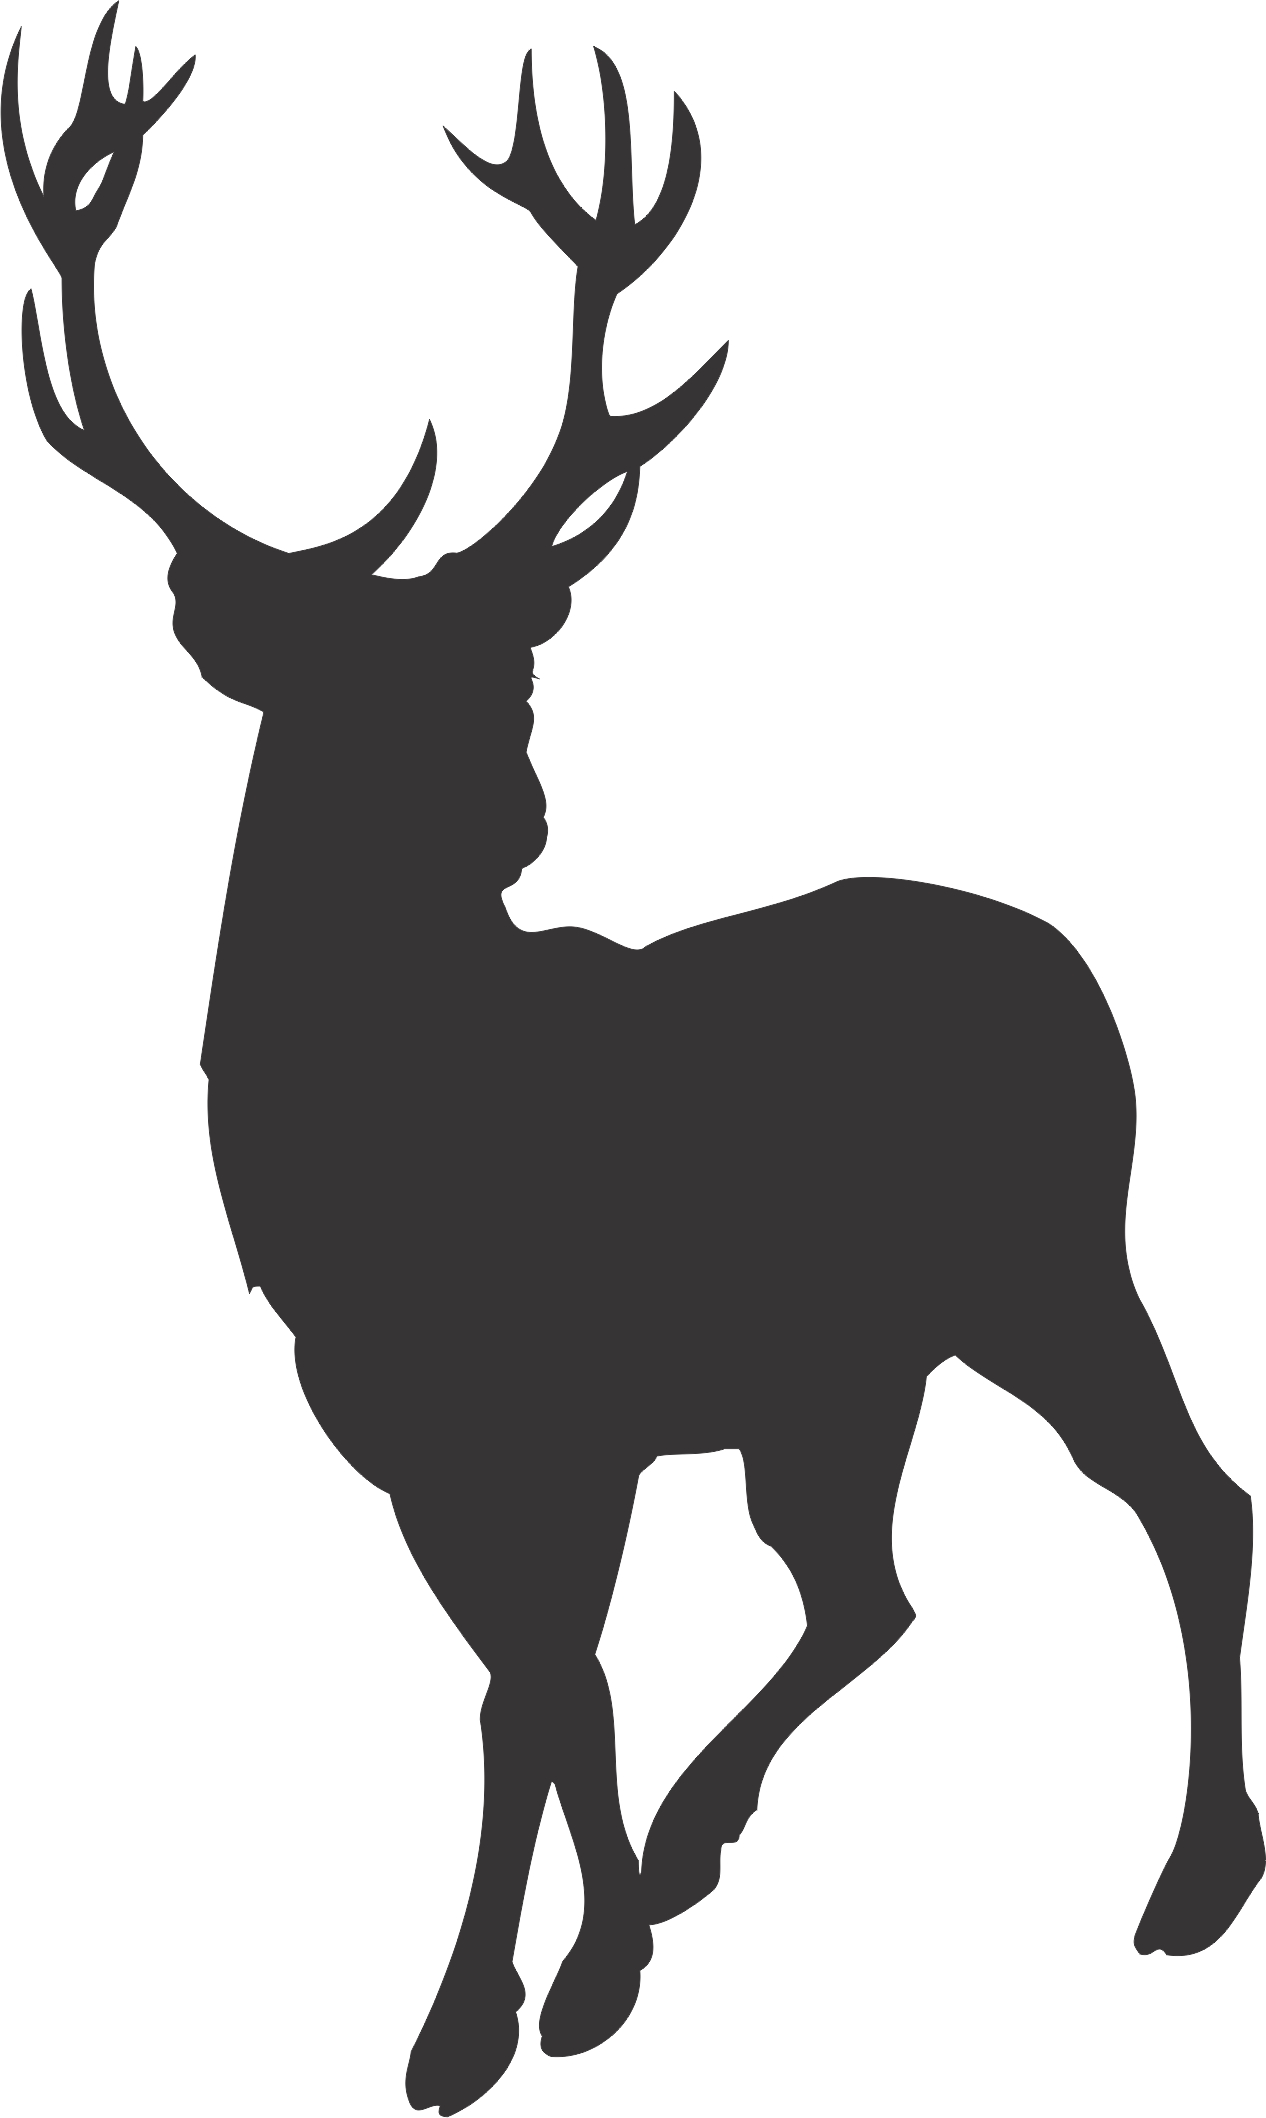 Buck clipart deer silhouette Collection cartoon search Http://www elk